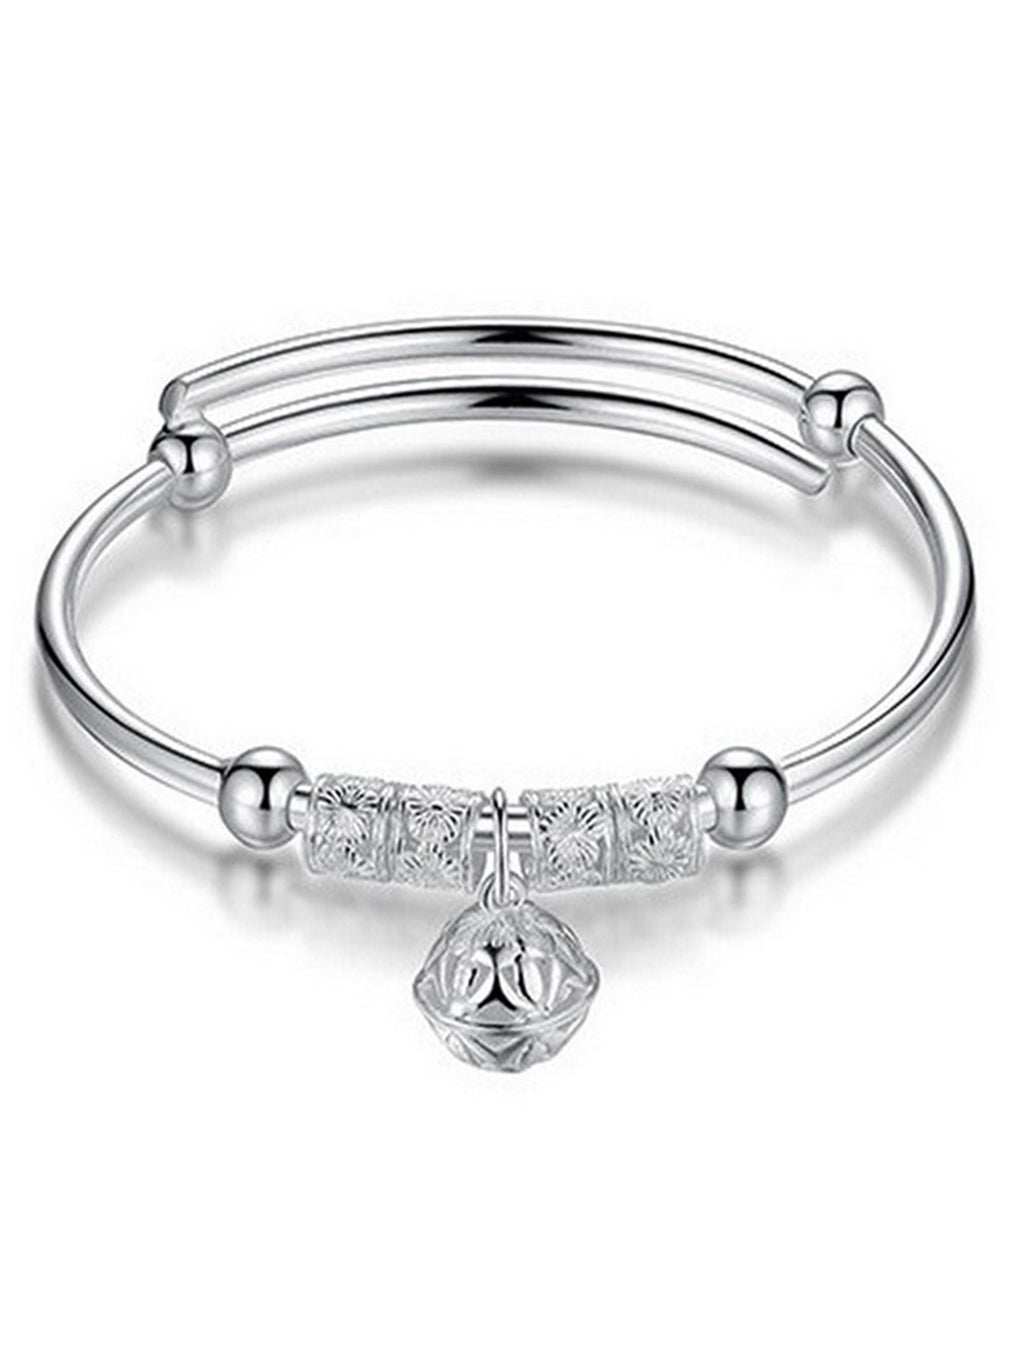 Silver Adjustable Bangle Bracelet With Filigree Ball Charm